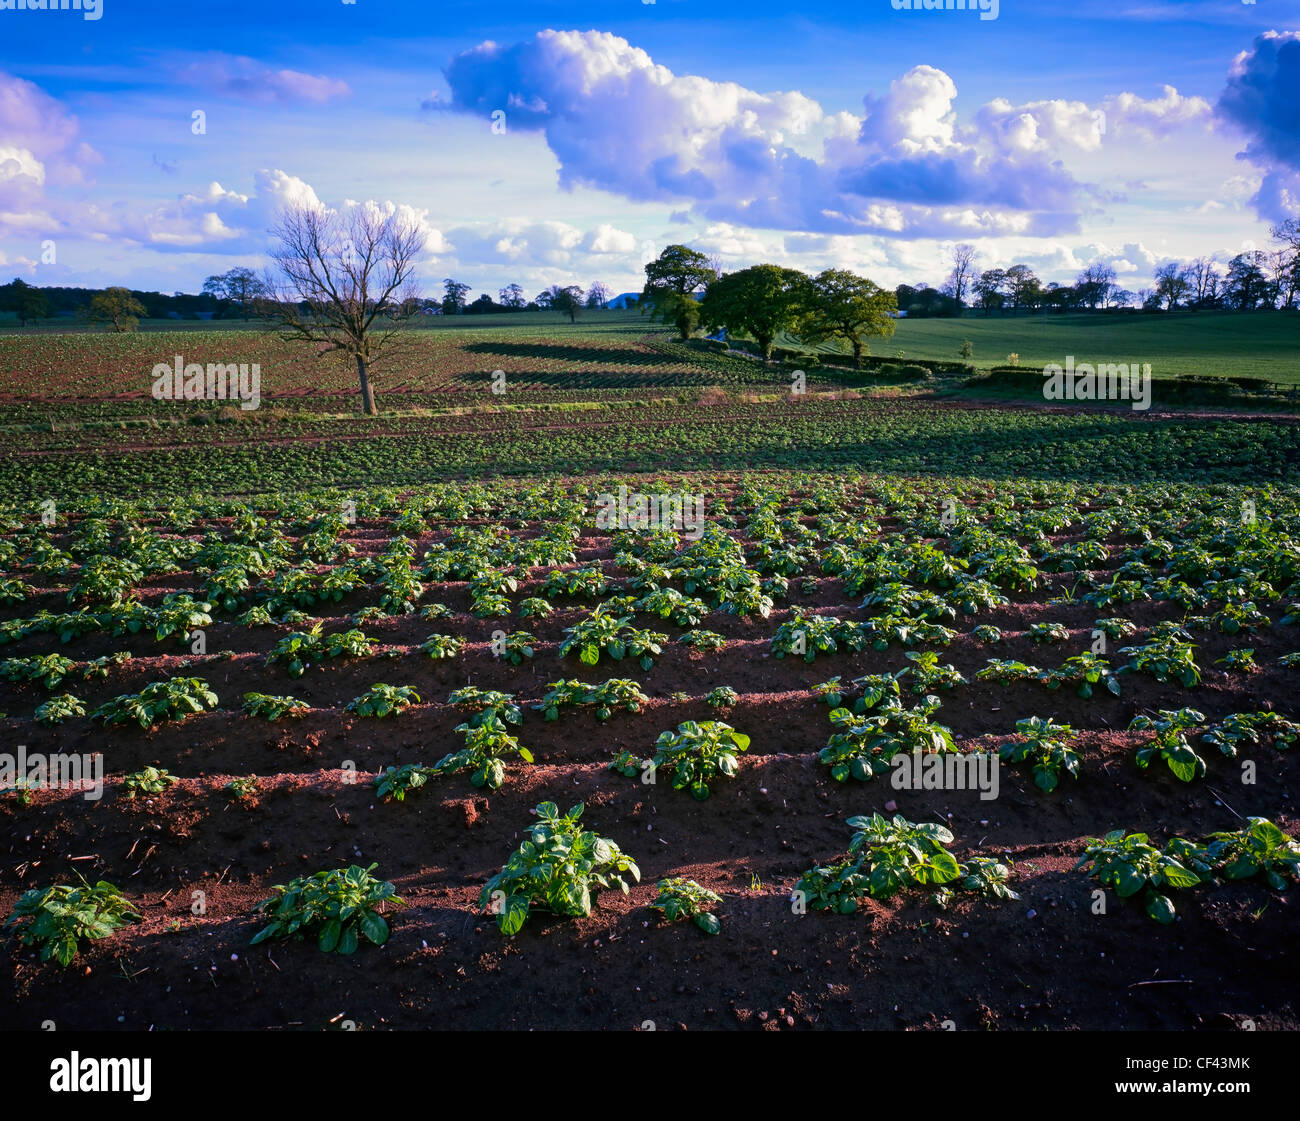 View across a fertile field of crops in rural Cheshire. - Stock Image